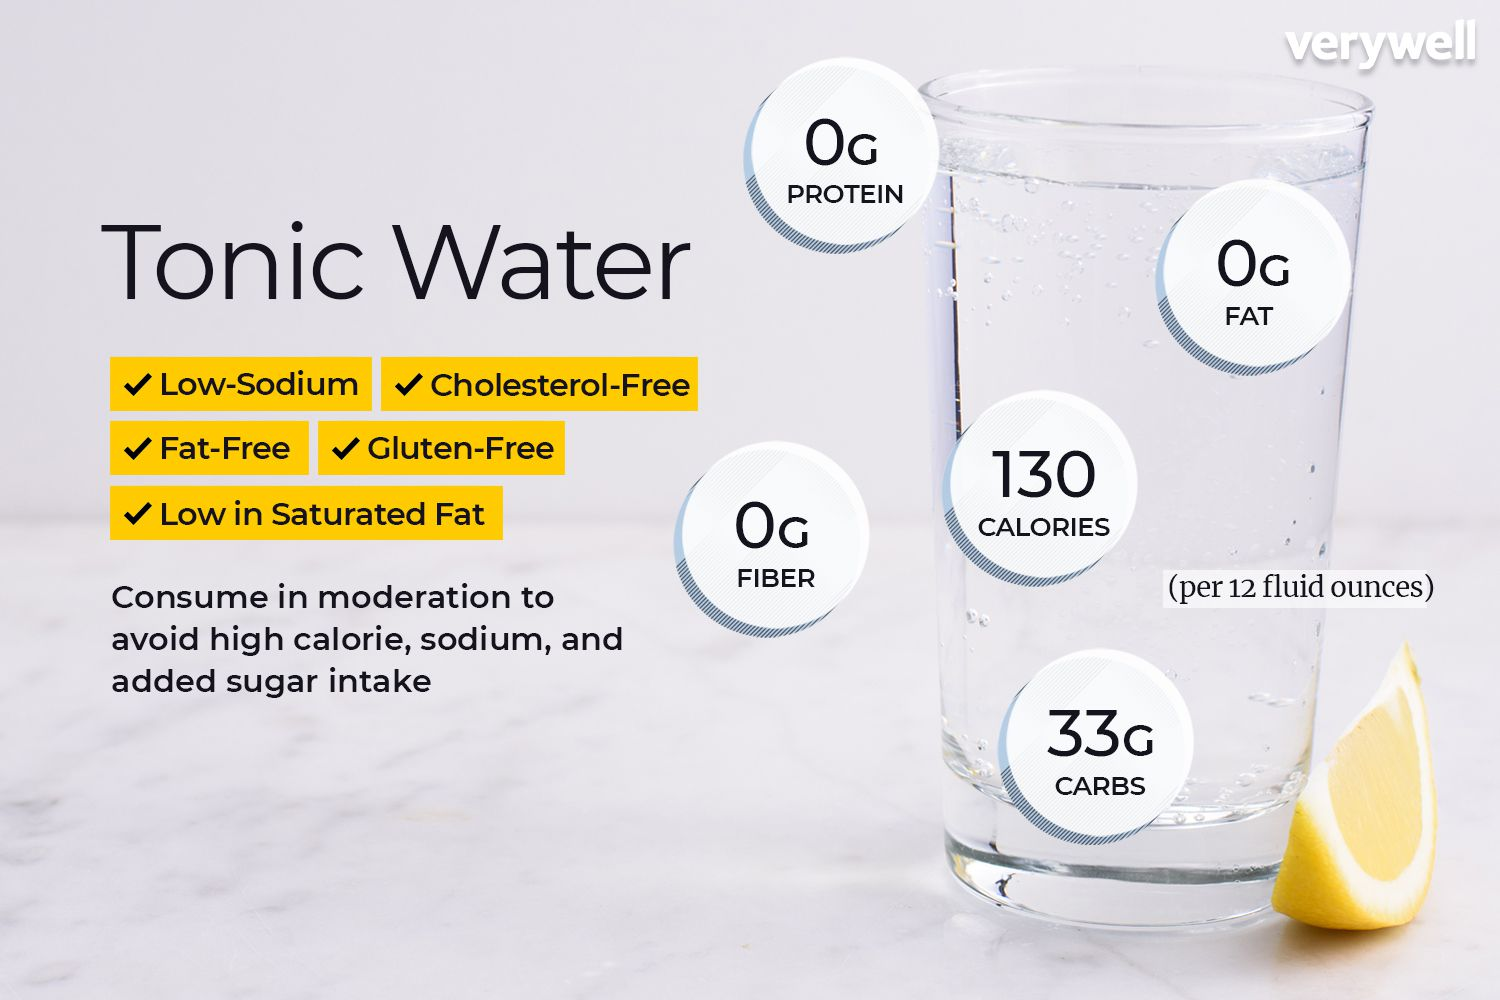 Tonic Water Nutrition Facts Calories Carbs And Health Benefits